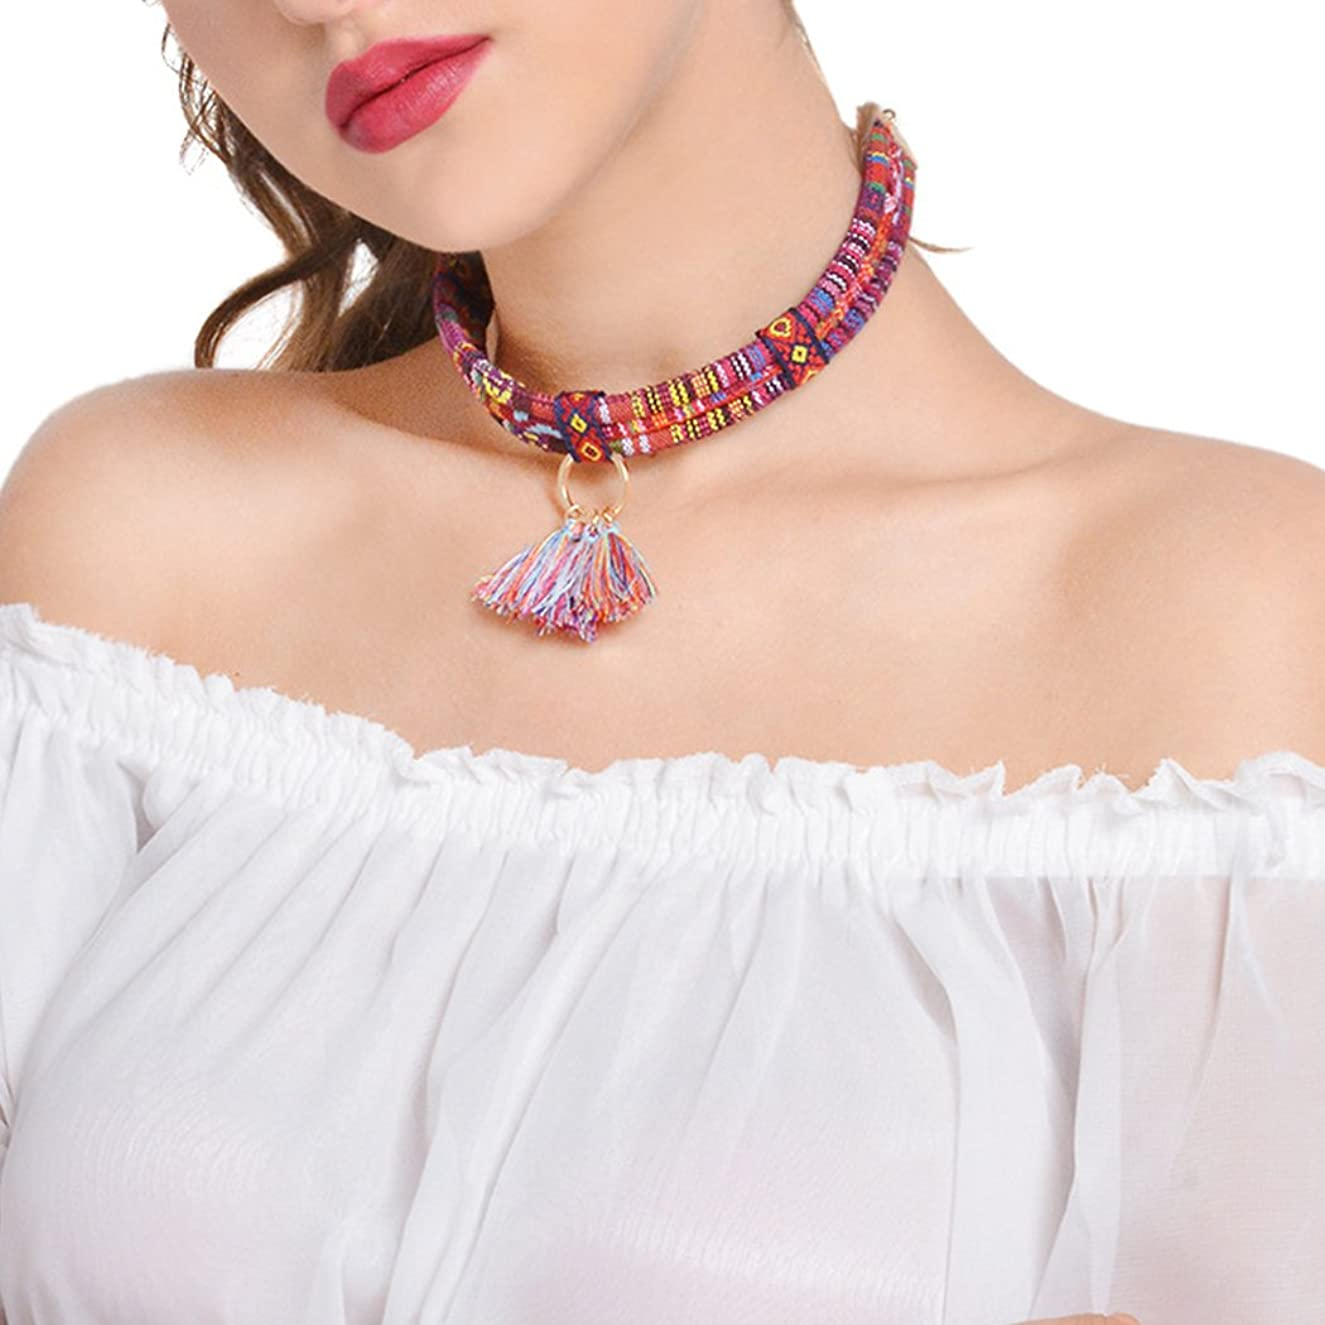 Simsly Bohemian Choker Necklace Jewelry with Multi Color Tassels Pendant for Women and Girls XL-0178